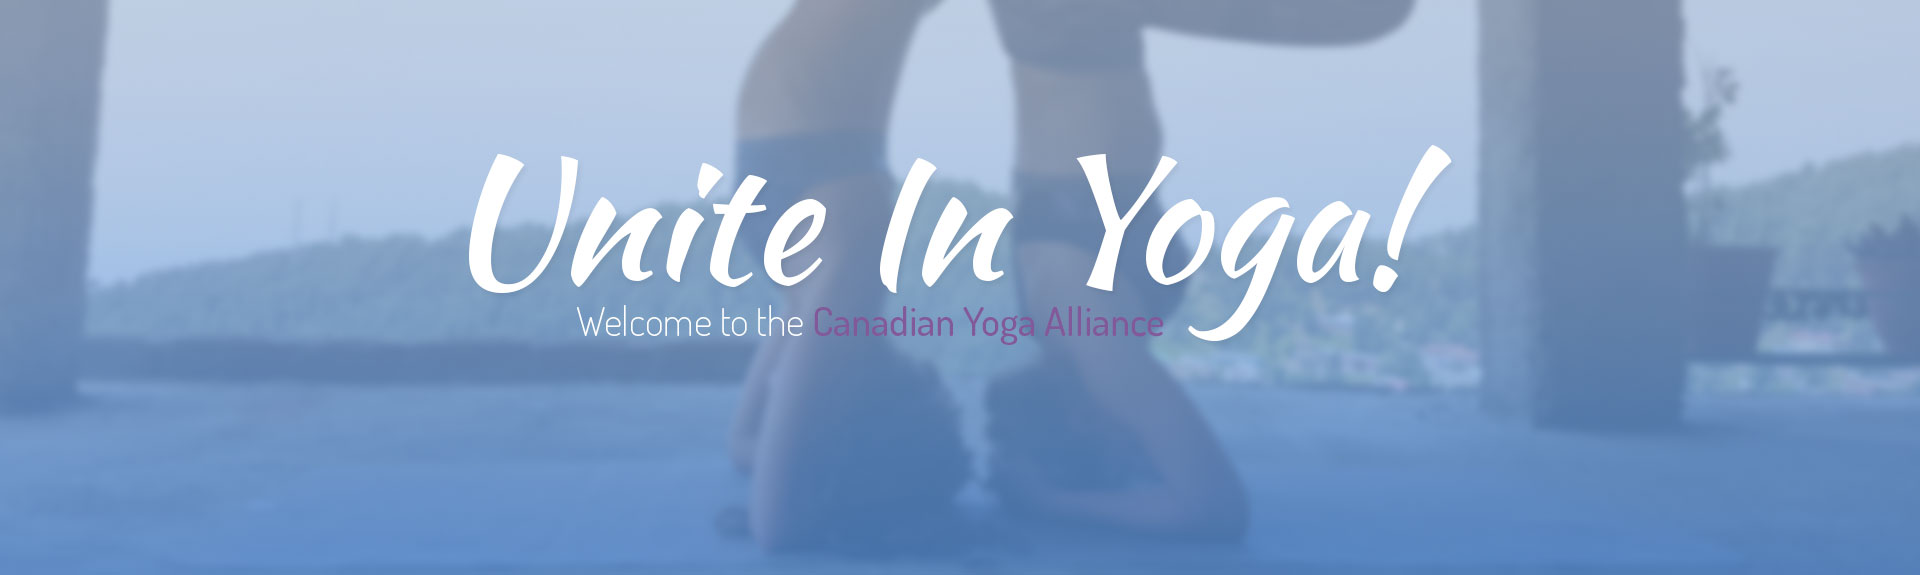 Unite In Yoga! Welcome to the Canadian Yoga Alliance